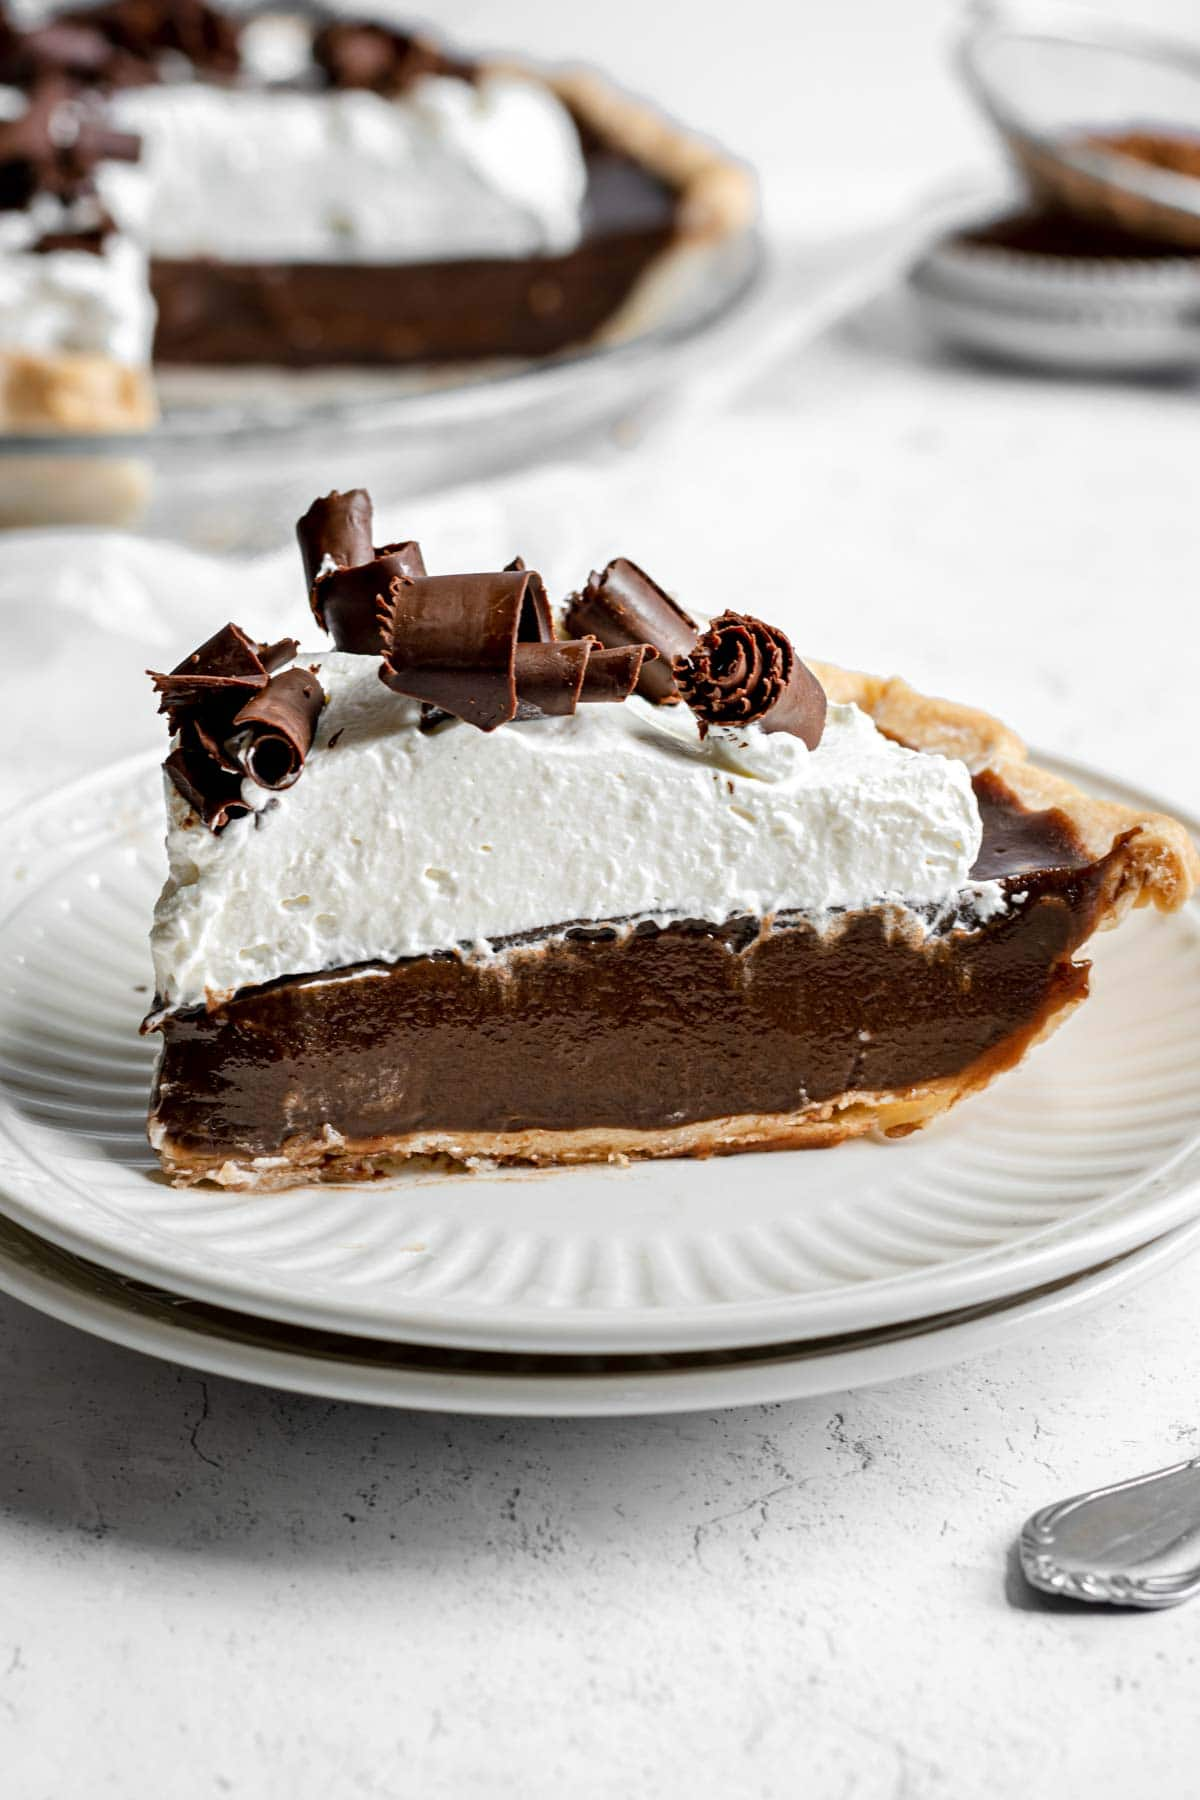 Chocolate Cream Pie with whipped cream and chocolate shavings on serving plate